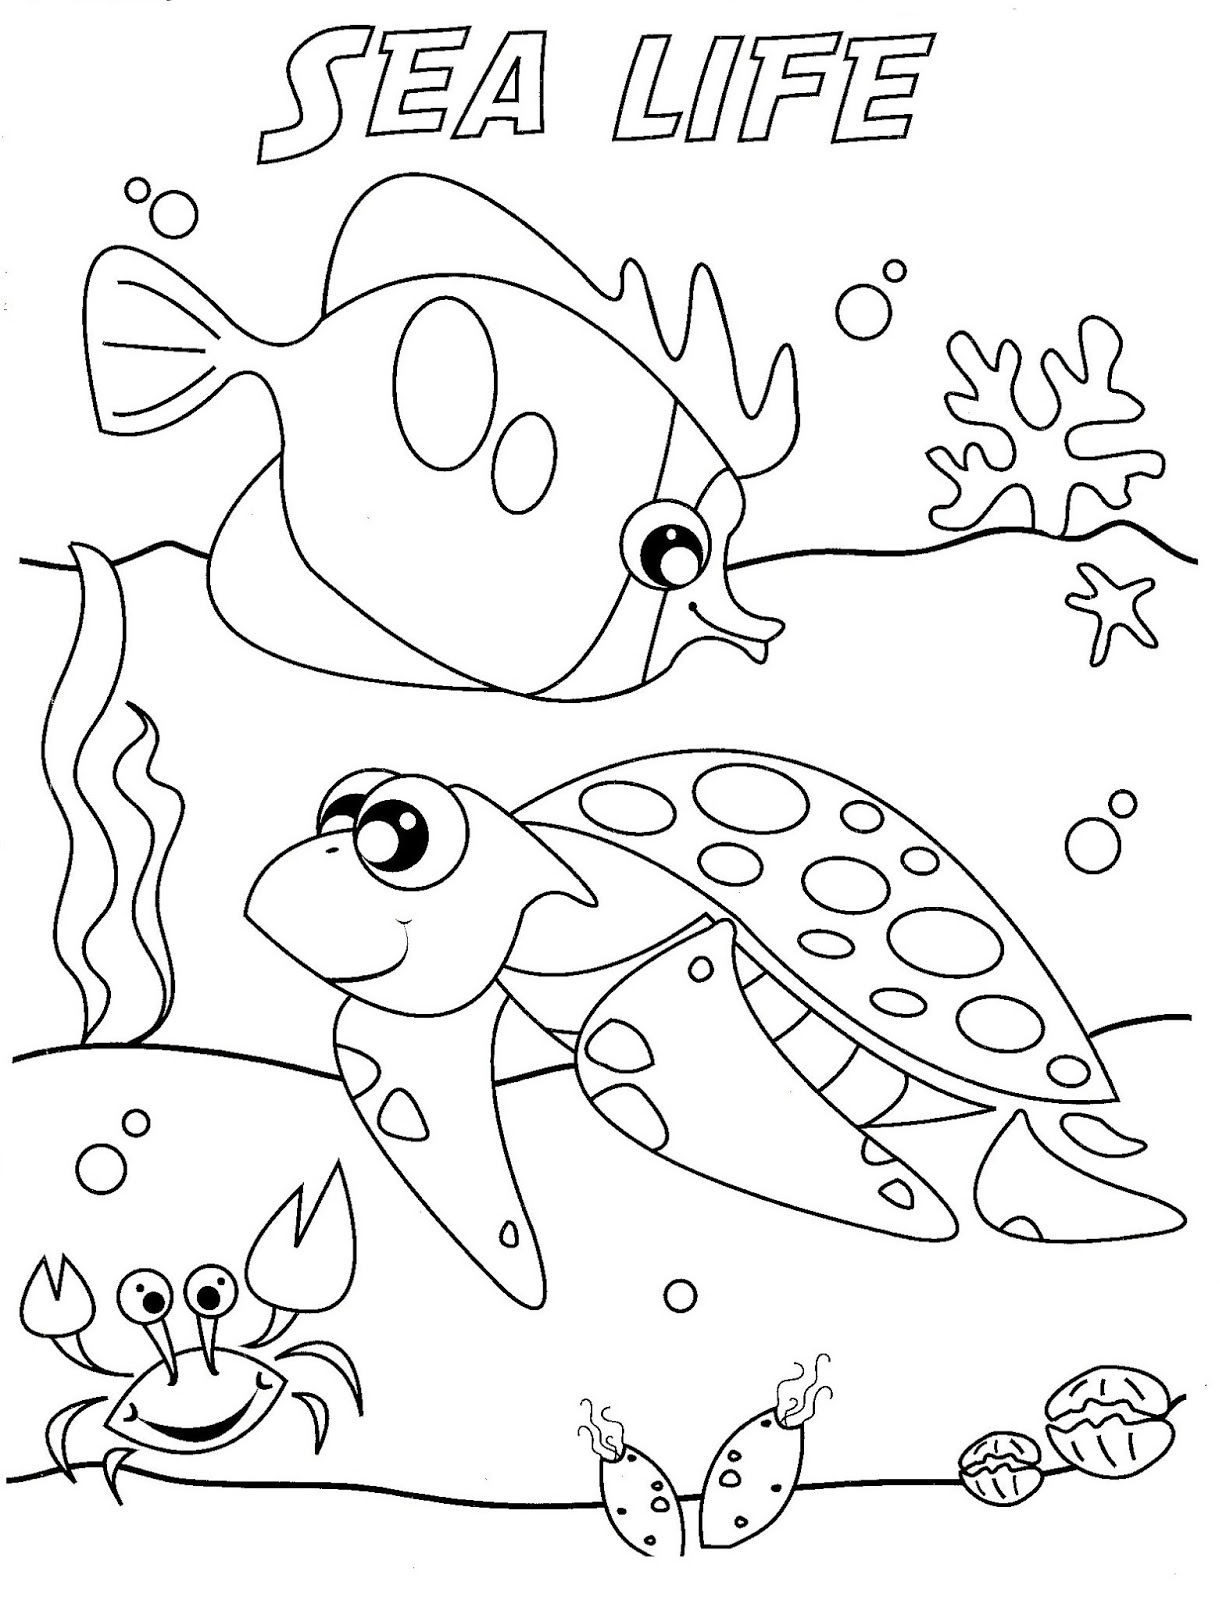 Free under the sea coloring pages to print for kids for Sea animals coloring pages